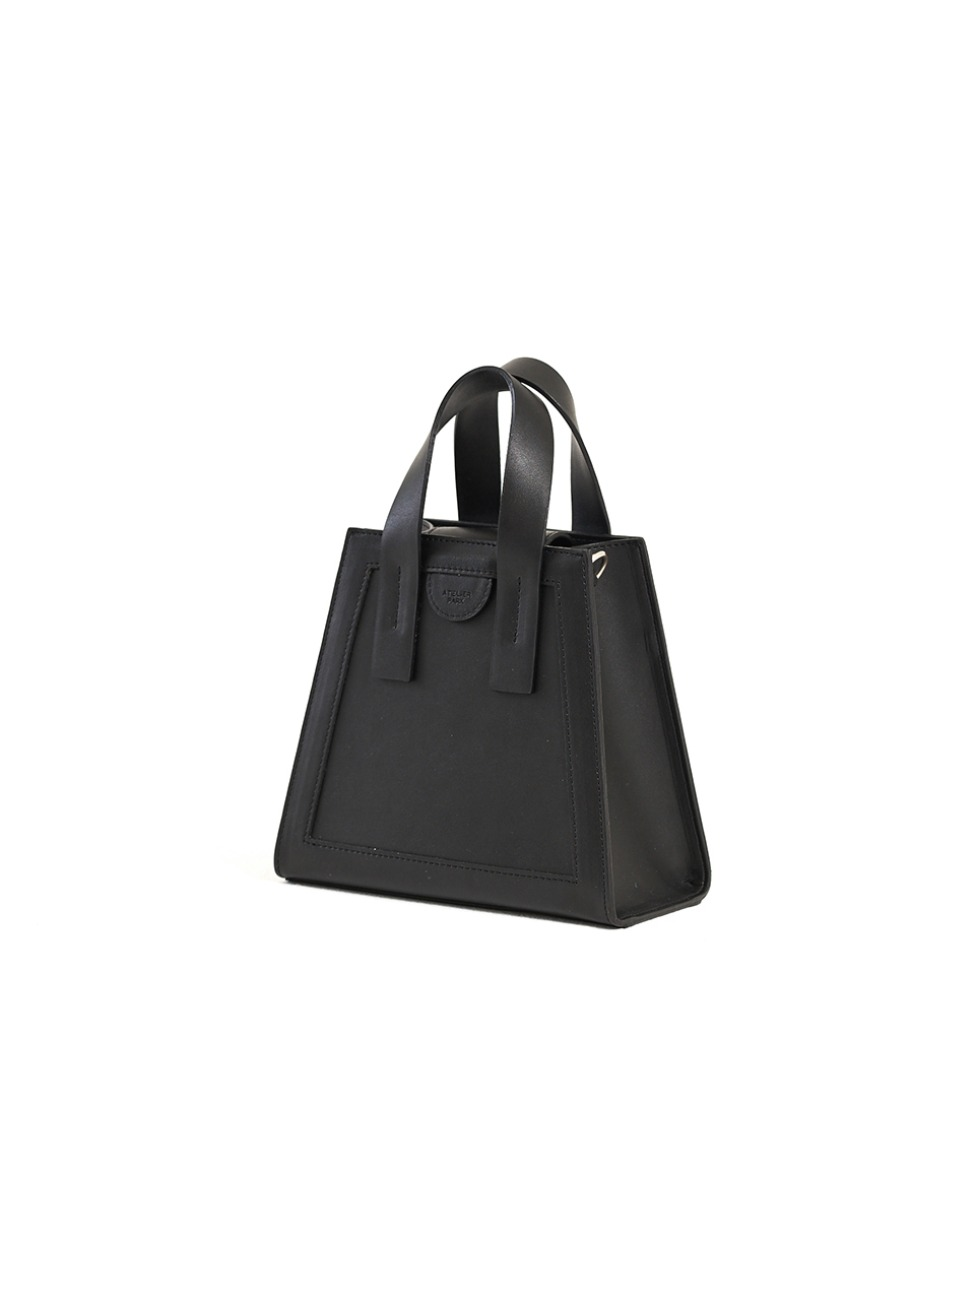 GEO BAG_MINI_BLACK